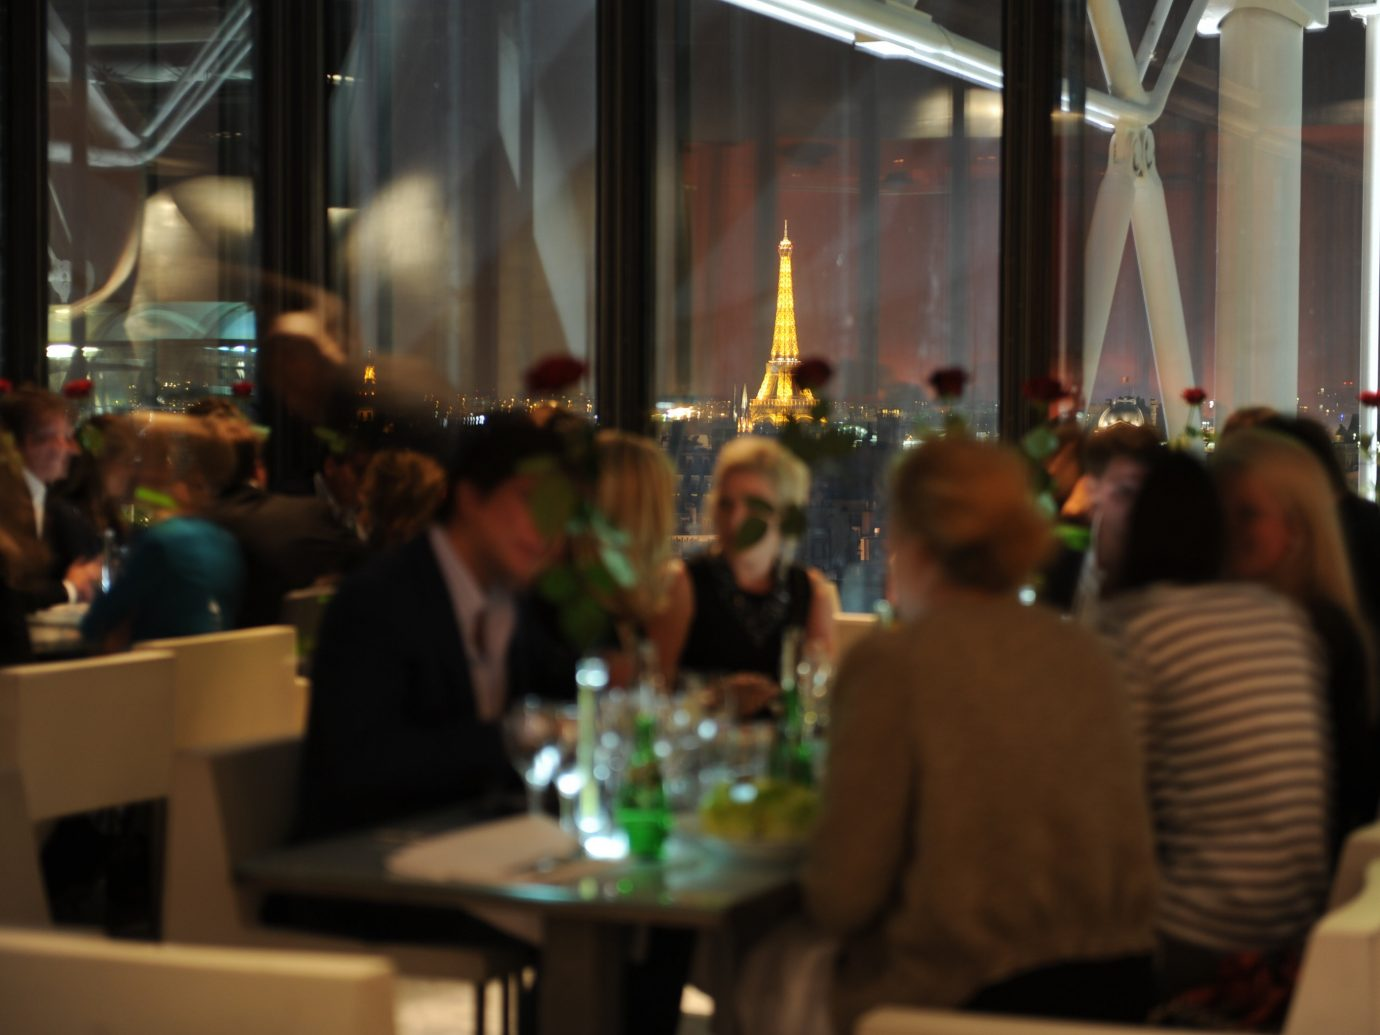 Food + Drink person table indoor people meal group dinner restaurant Bar several